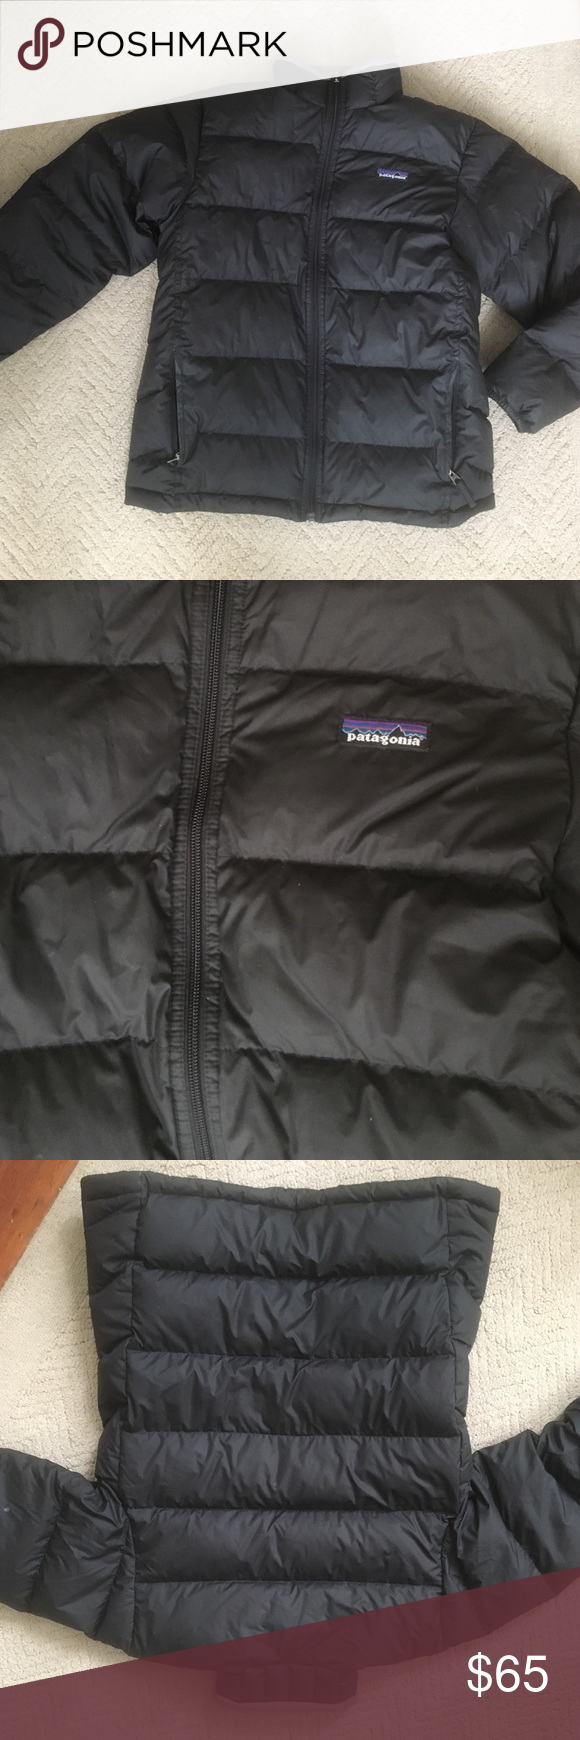 Patagonia XL Kids Black Jacket Jacket is perfect for the winter season! Is an XL in kids but can fit a women a size s/m. This jacket has no damage to it, has been worn a few times. Patagonia Jackets & Coats Puffers